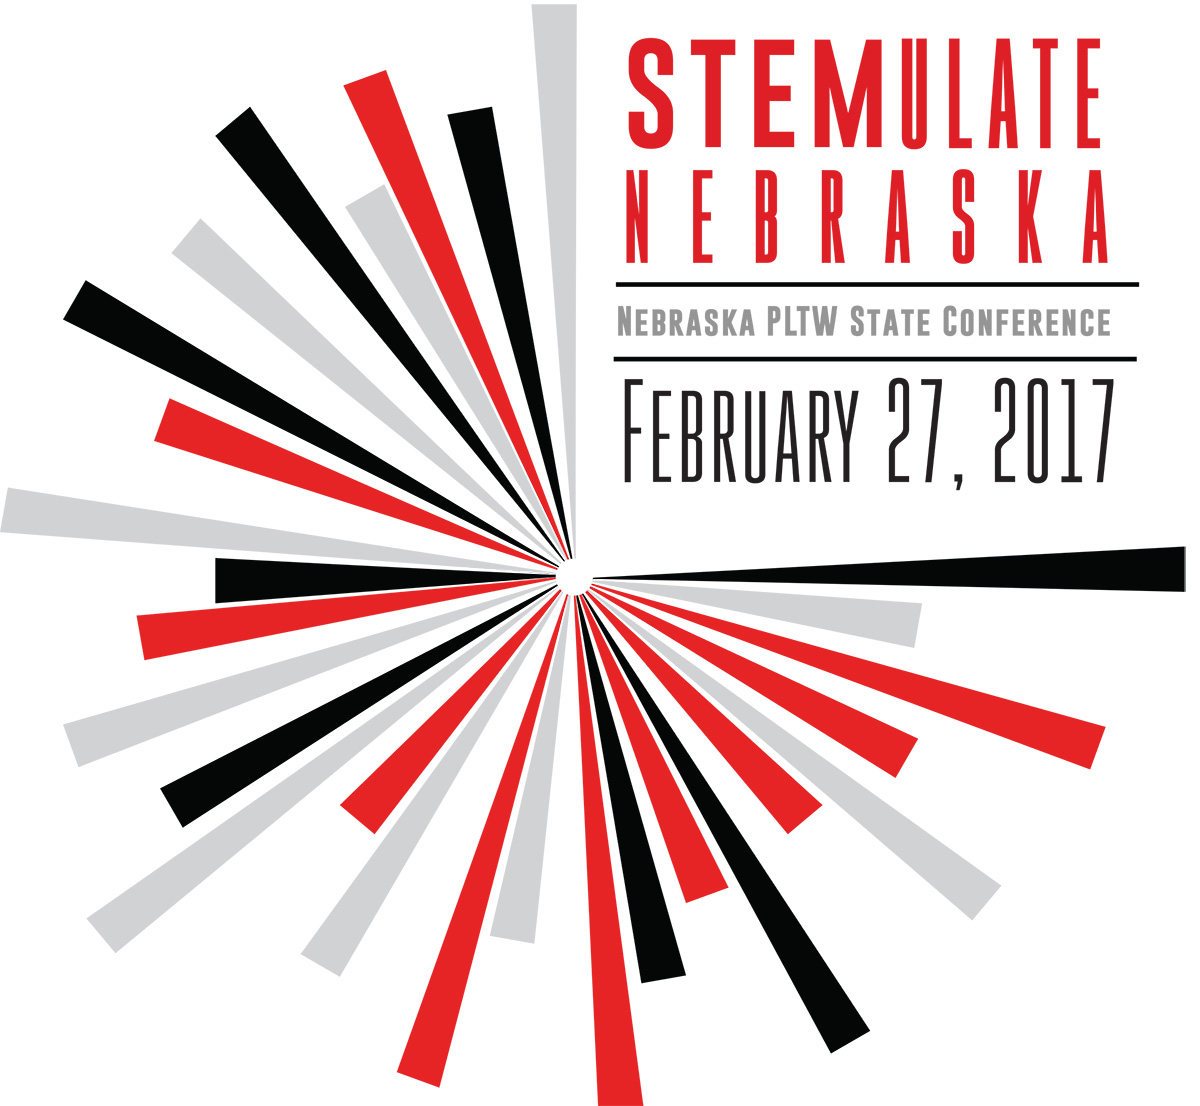 STEMulate Nebraska: Nebraska PLTW State Conference. February 27, 2017